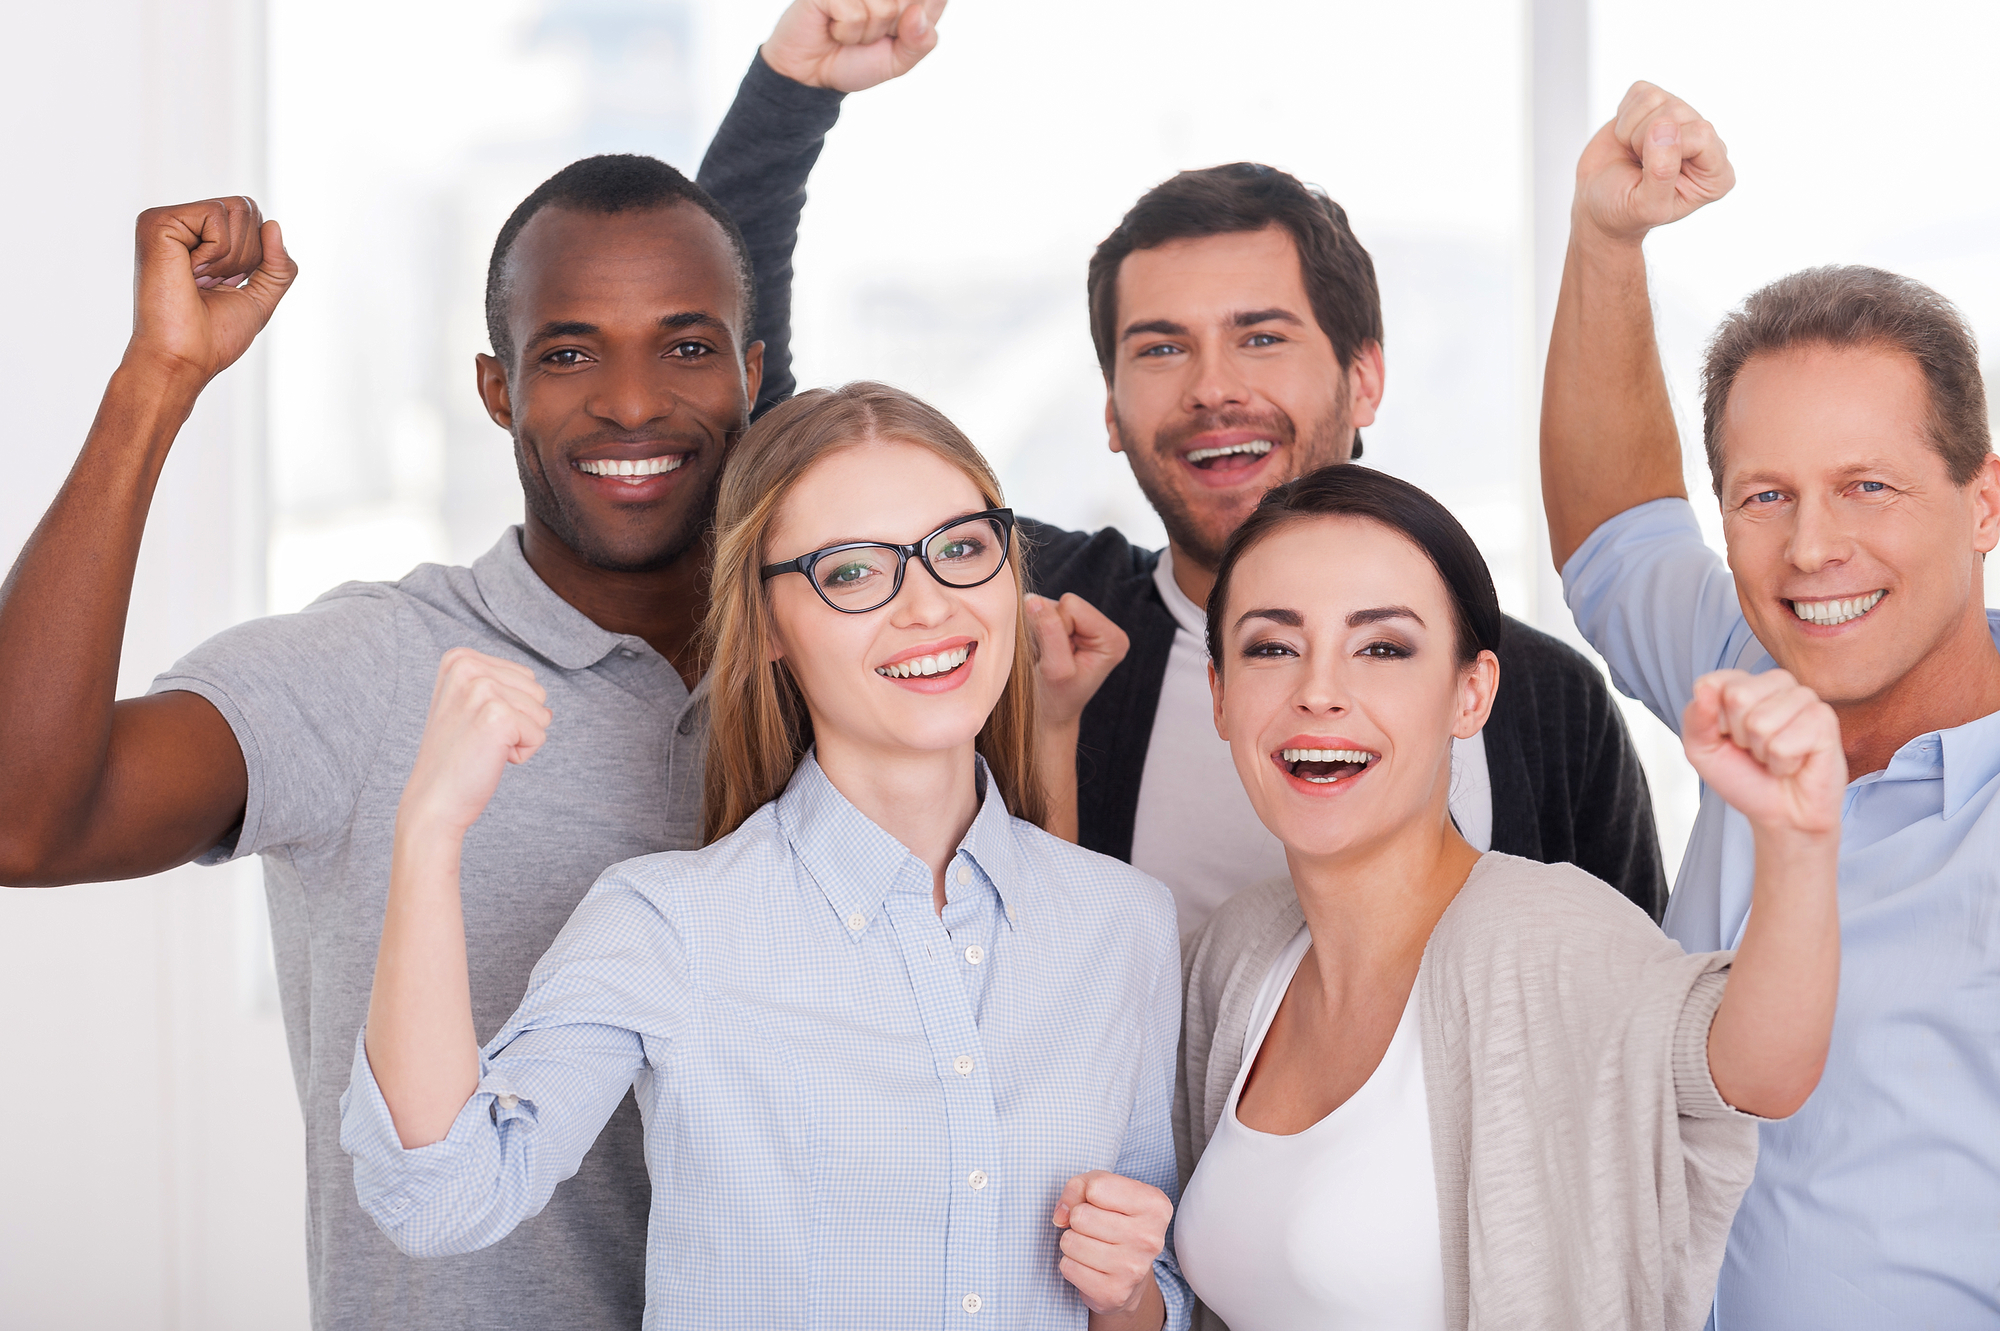 Happy business team. Group of cheerful business people in casual wear standing close to each other and keeping arms raised